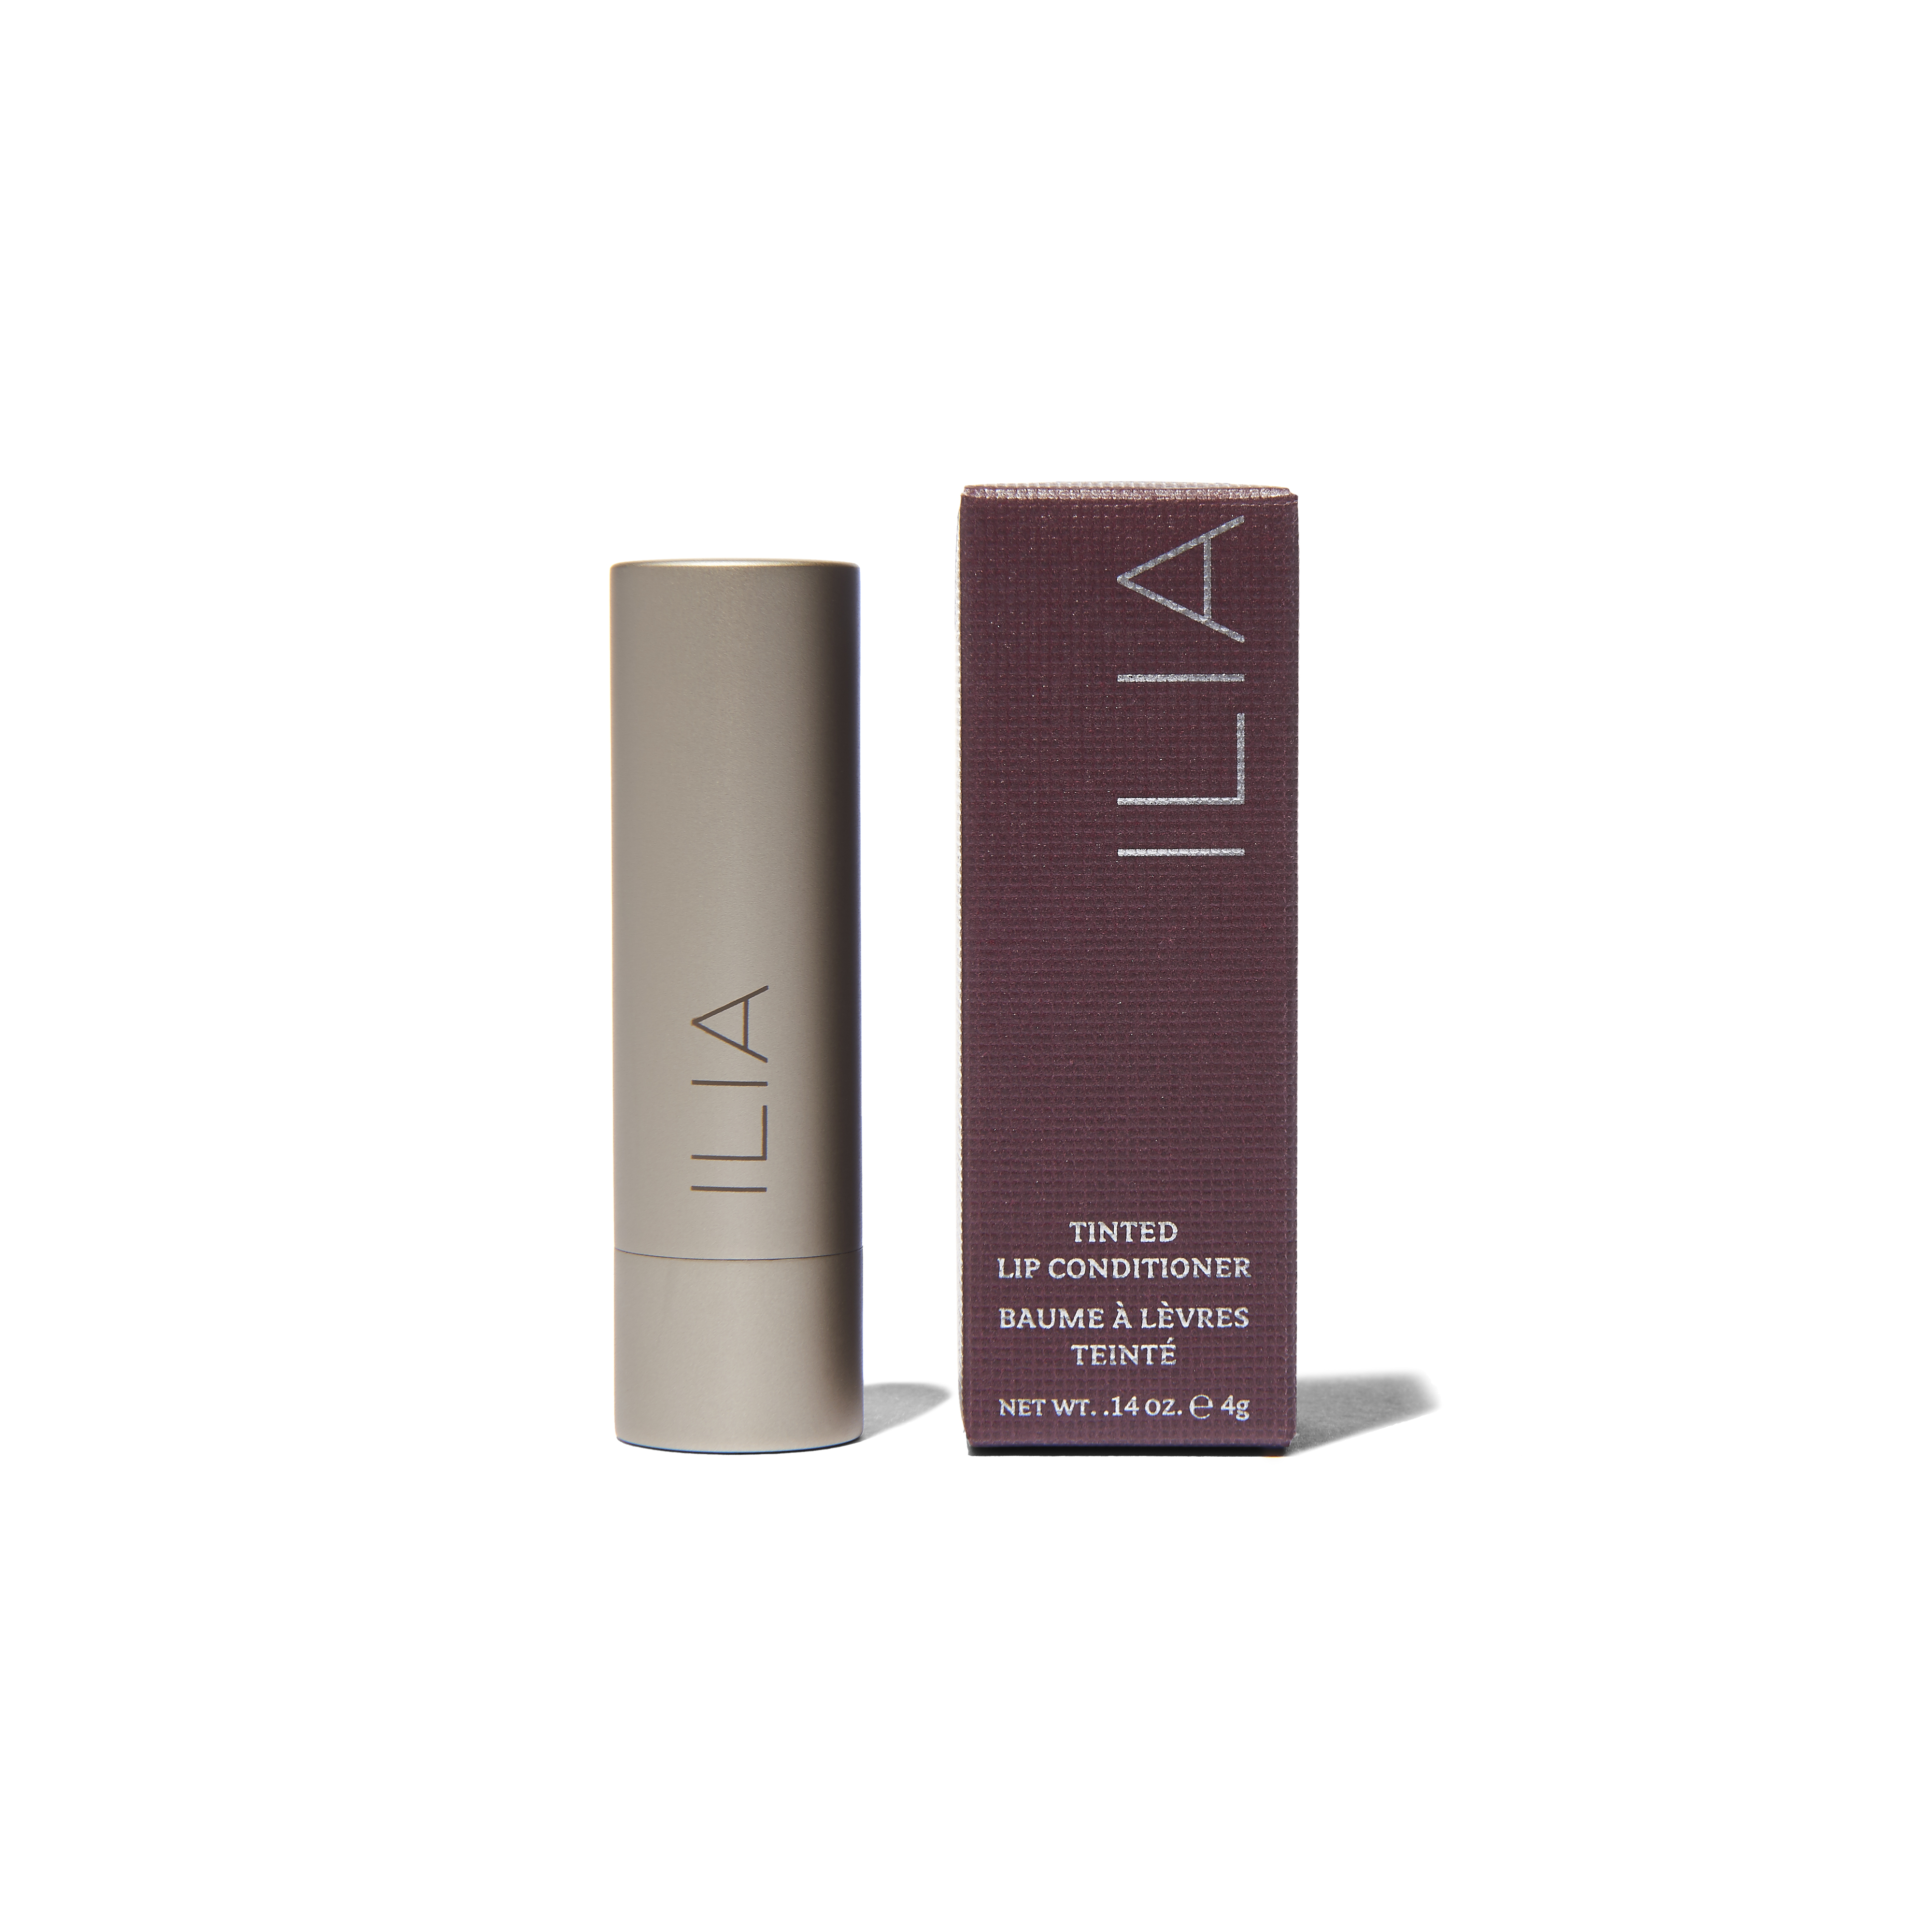 713757877824 - ILIA Tinted Lip Conditioner